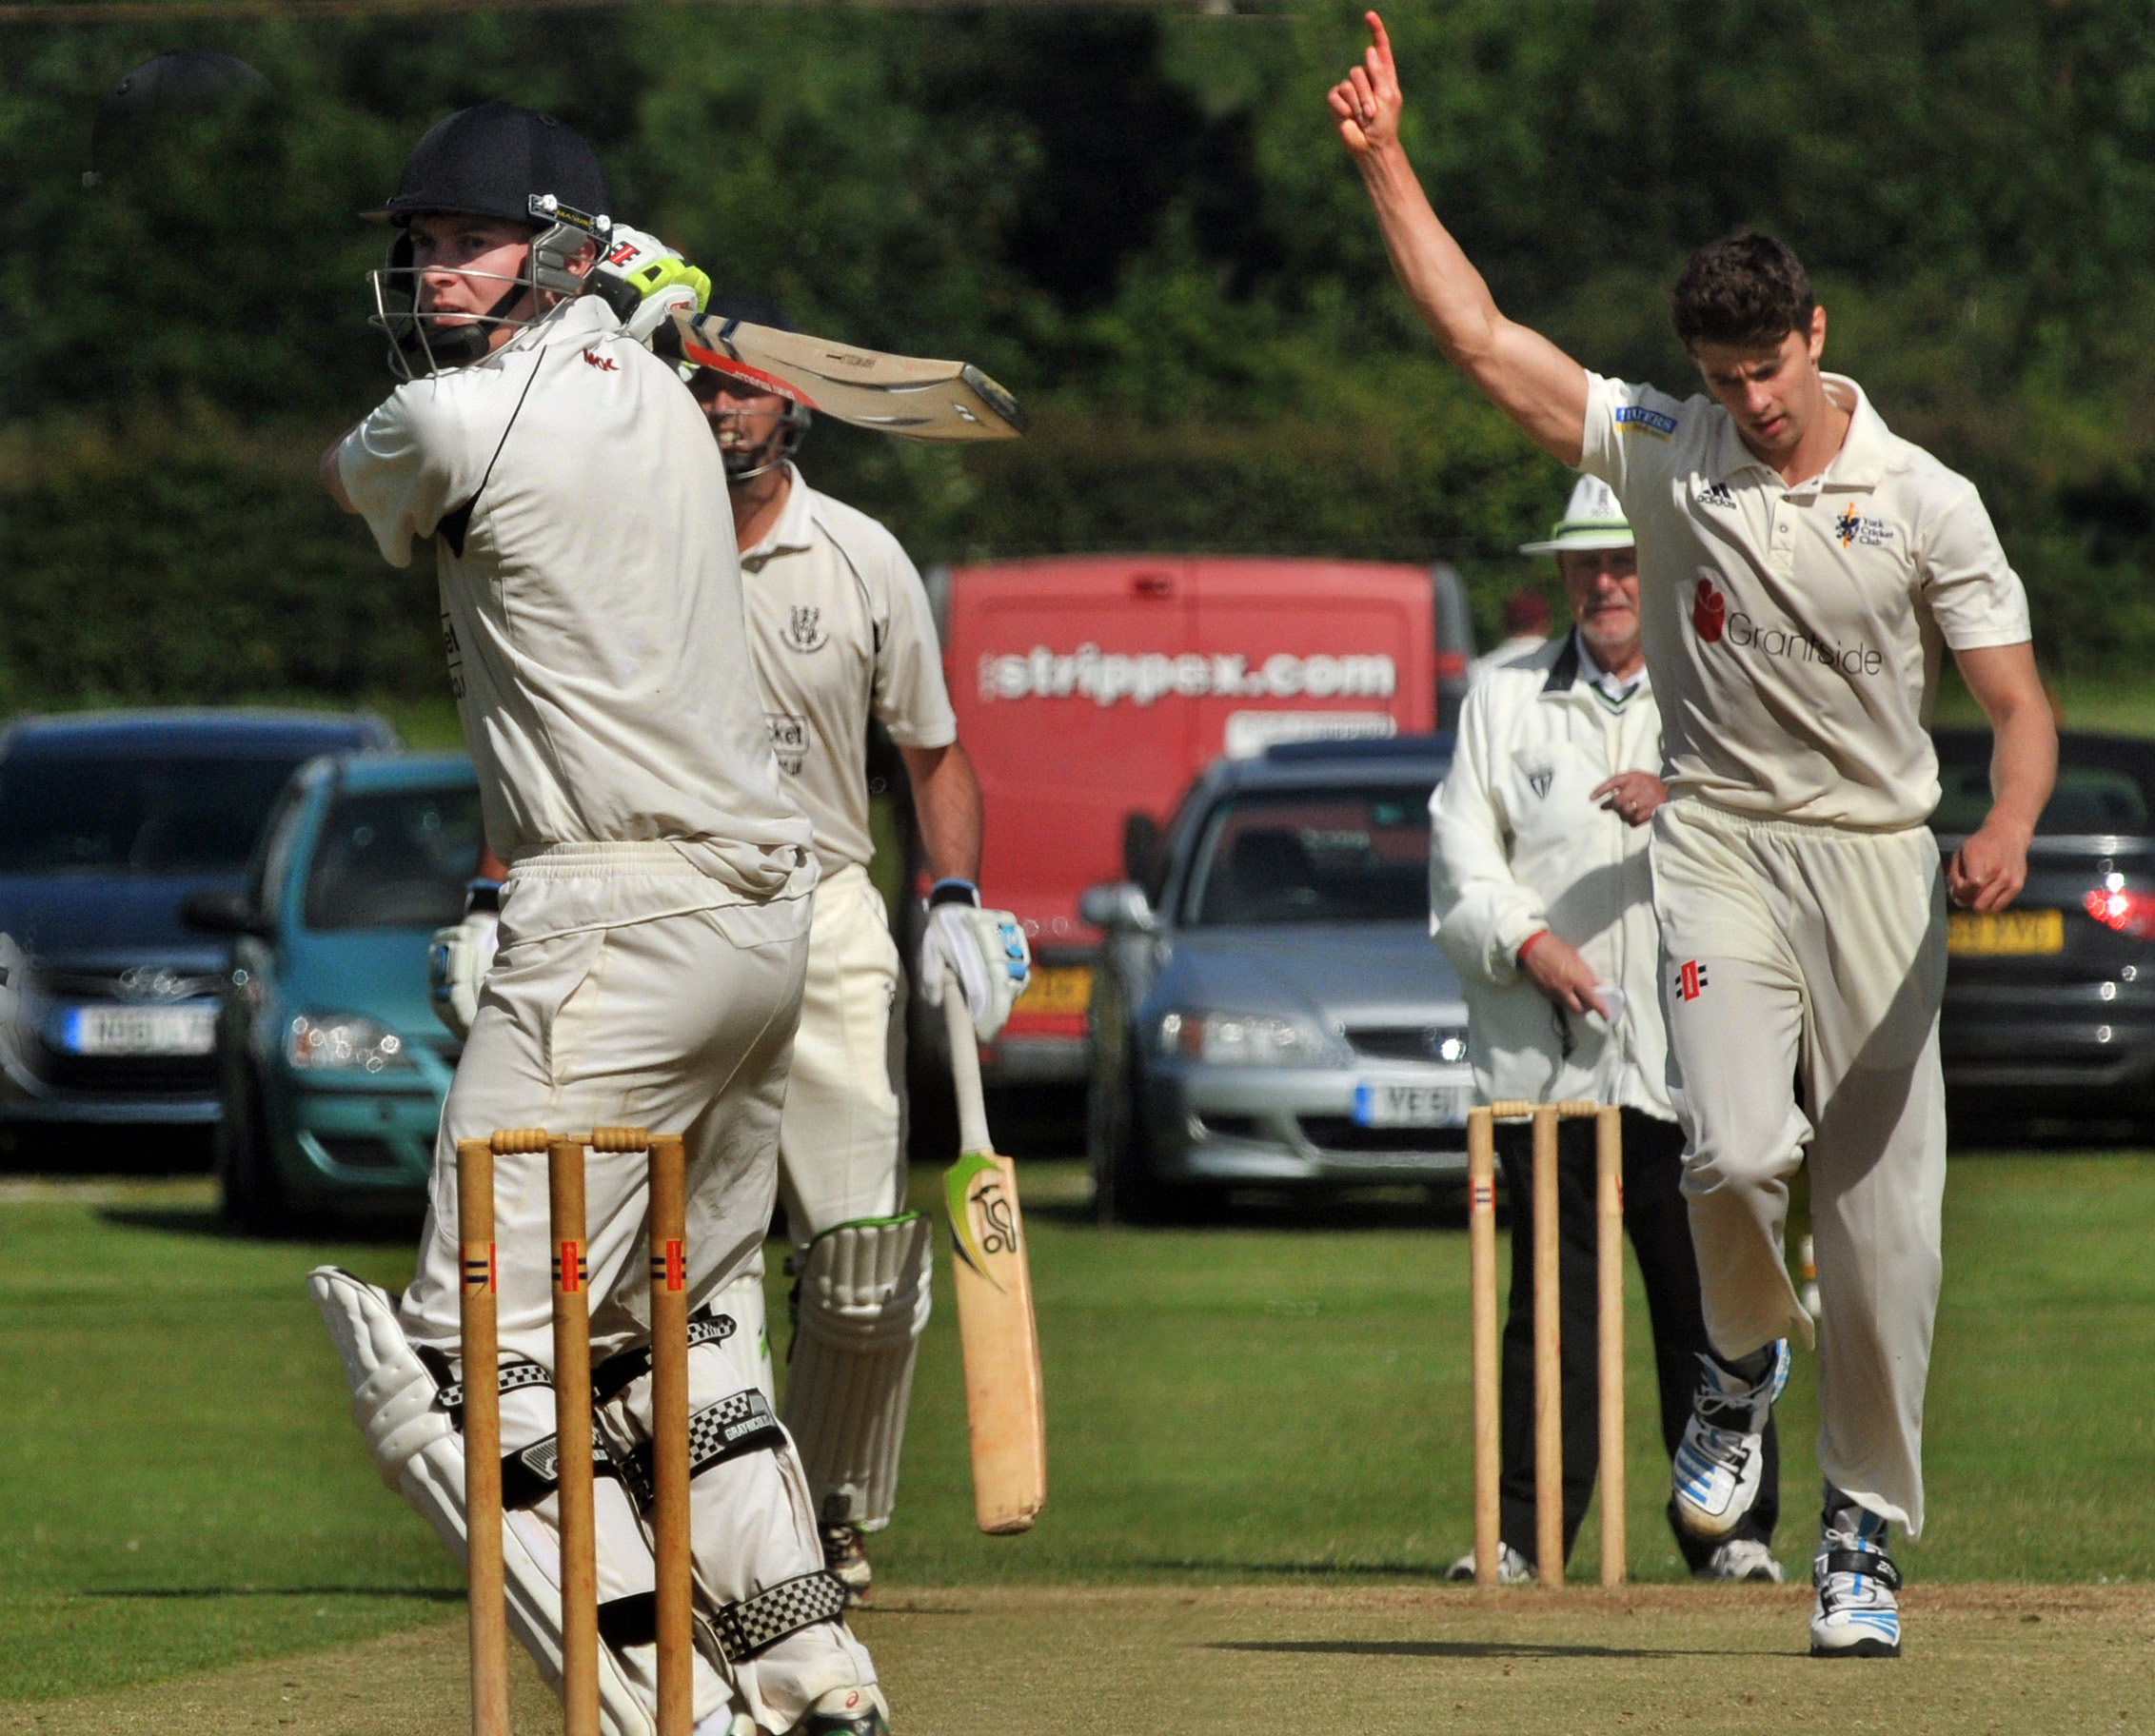 RULED OUT: Jonny Moxon, pictured celebrating taking the wicket of Andrew Bilton in a previous meeting with Woodhouse Grange, will be missing for York during this weekend's top-of-the-table Hunters ECB Yorkshire Premier League North clash. Picture: Nigel